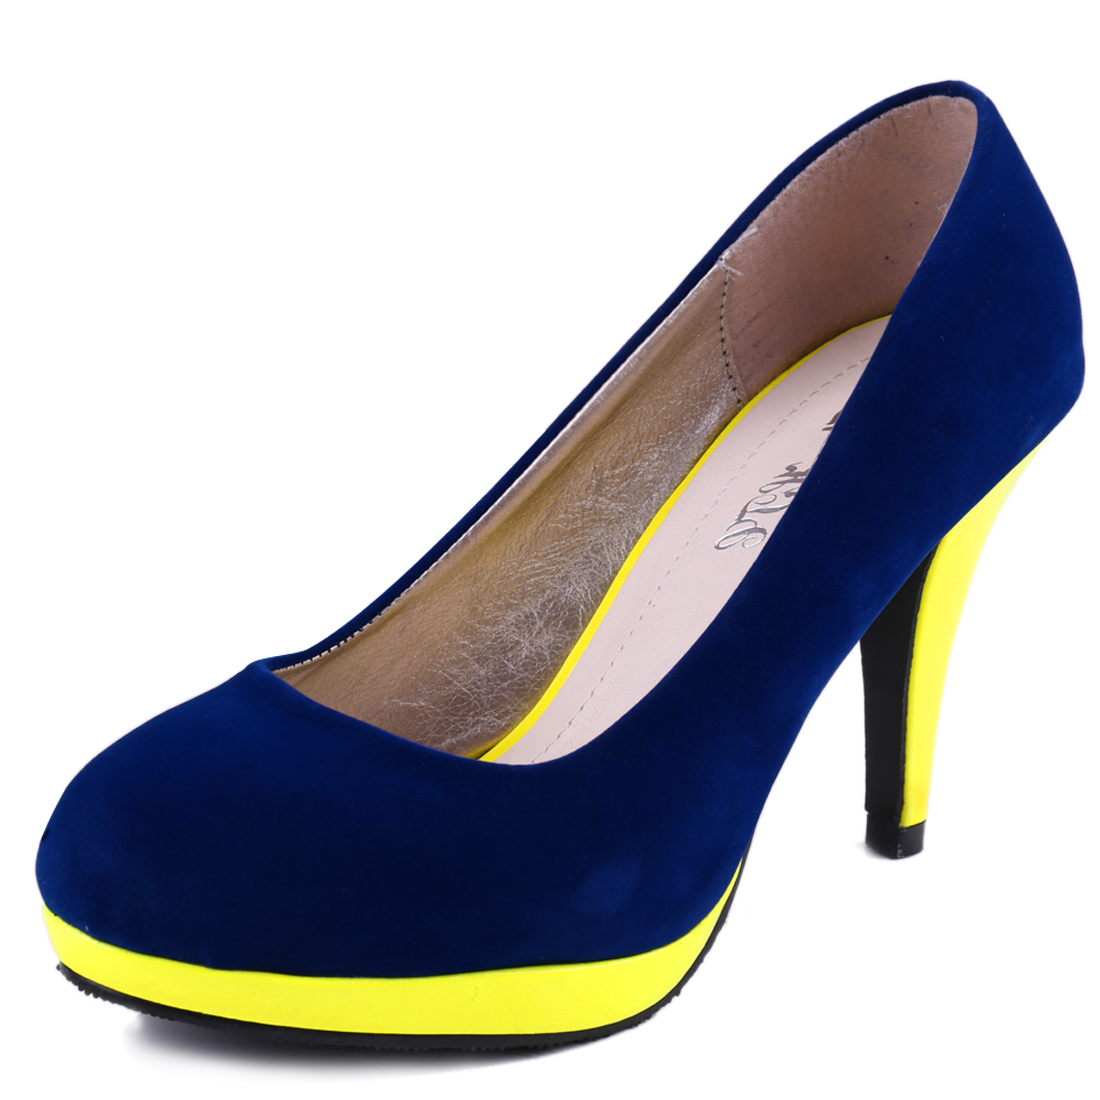 Lady Chic Royalblue Yellow Colorblock Design Platform Pumps US 6.5